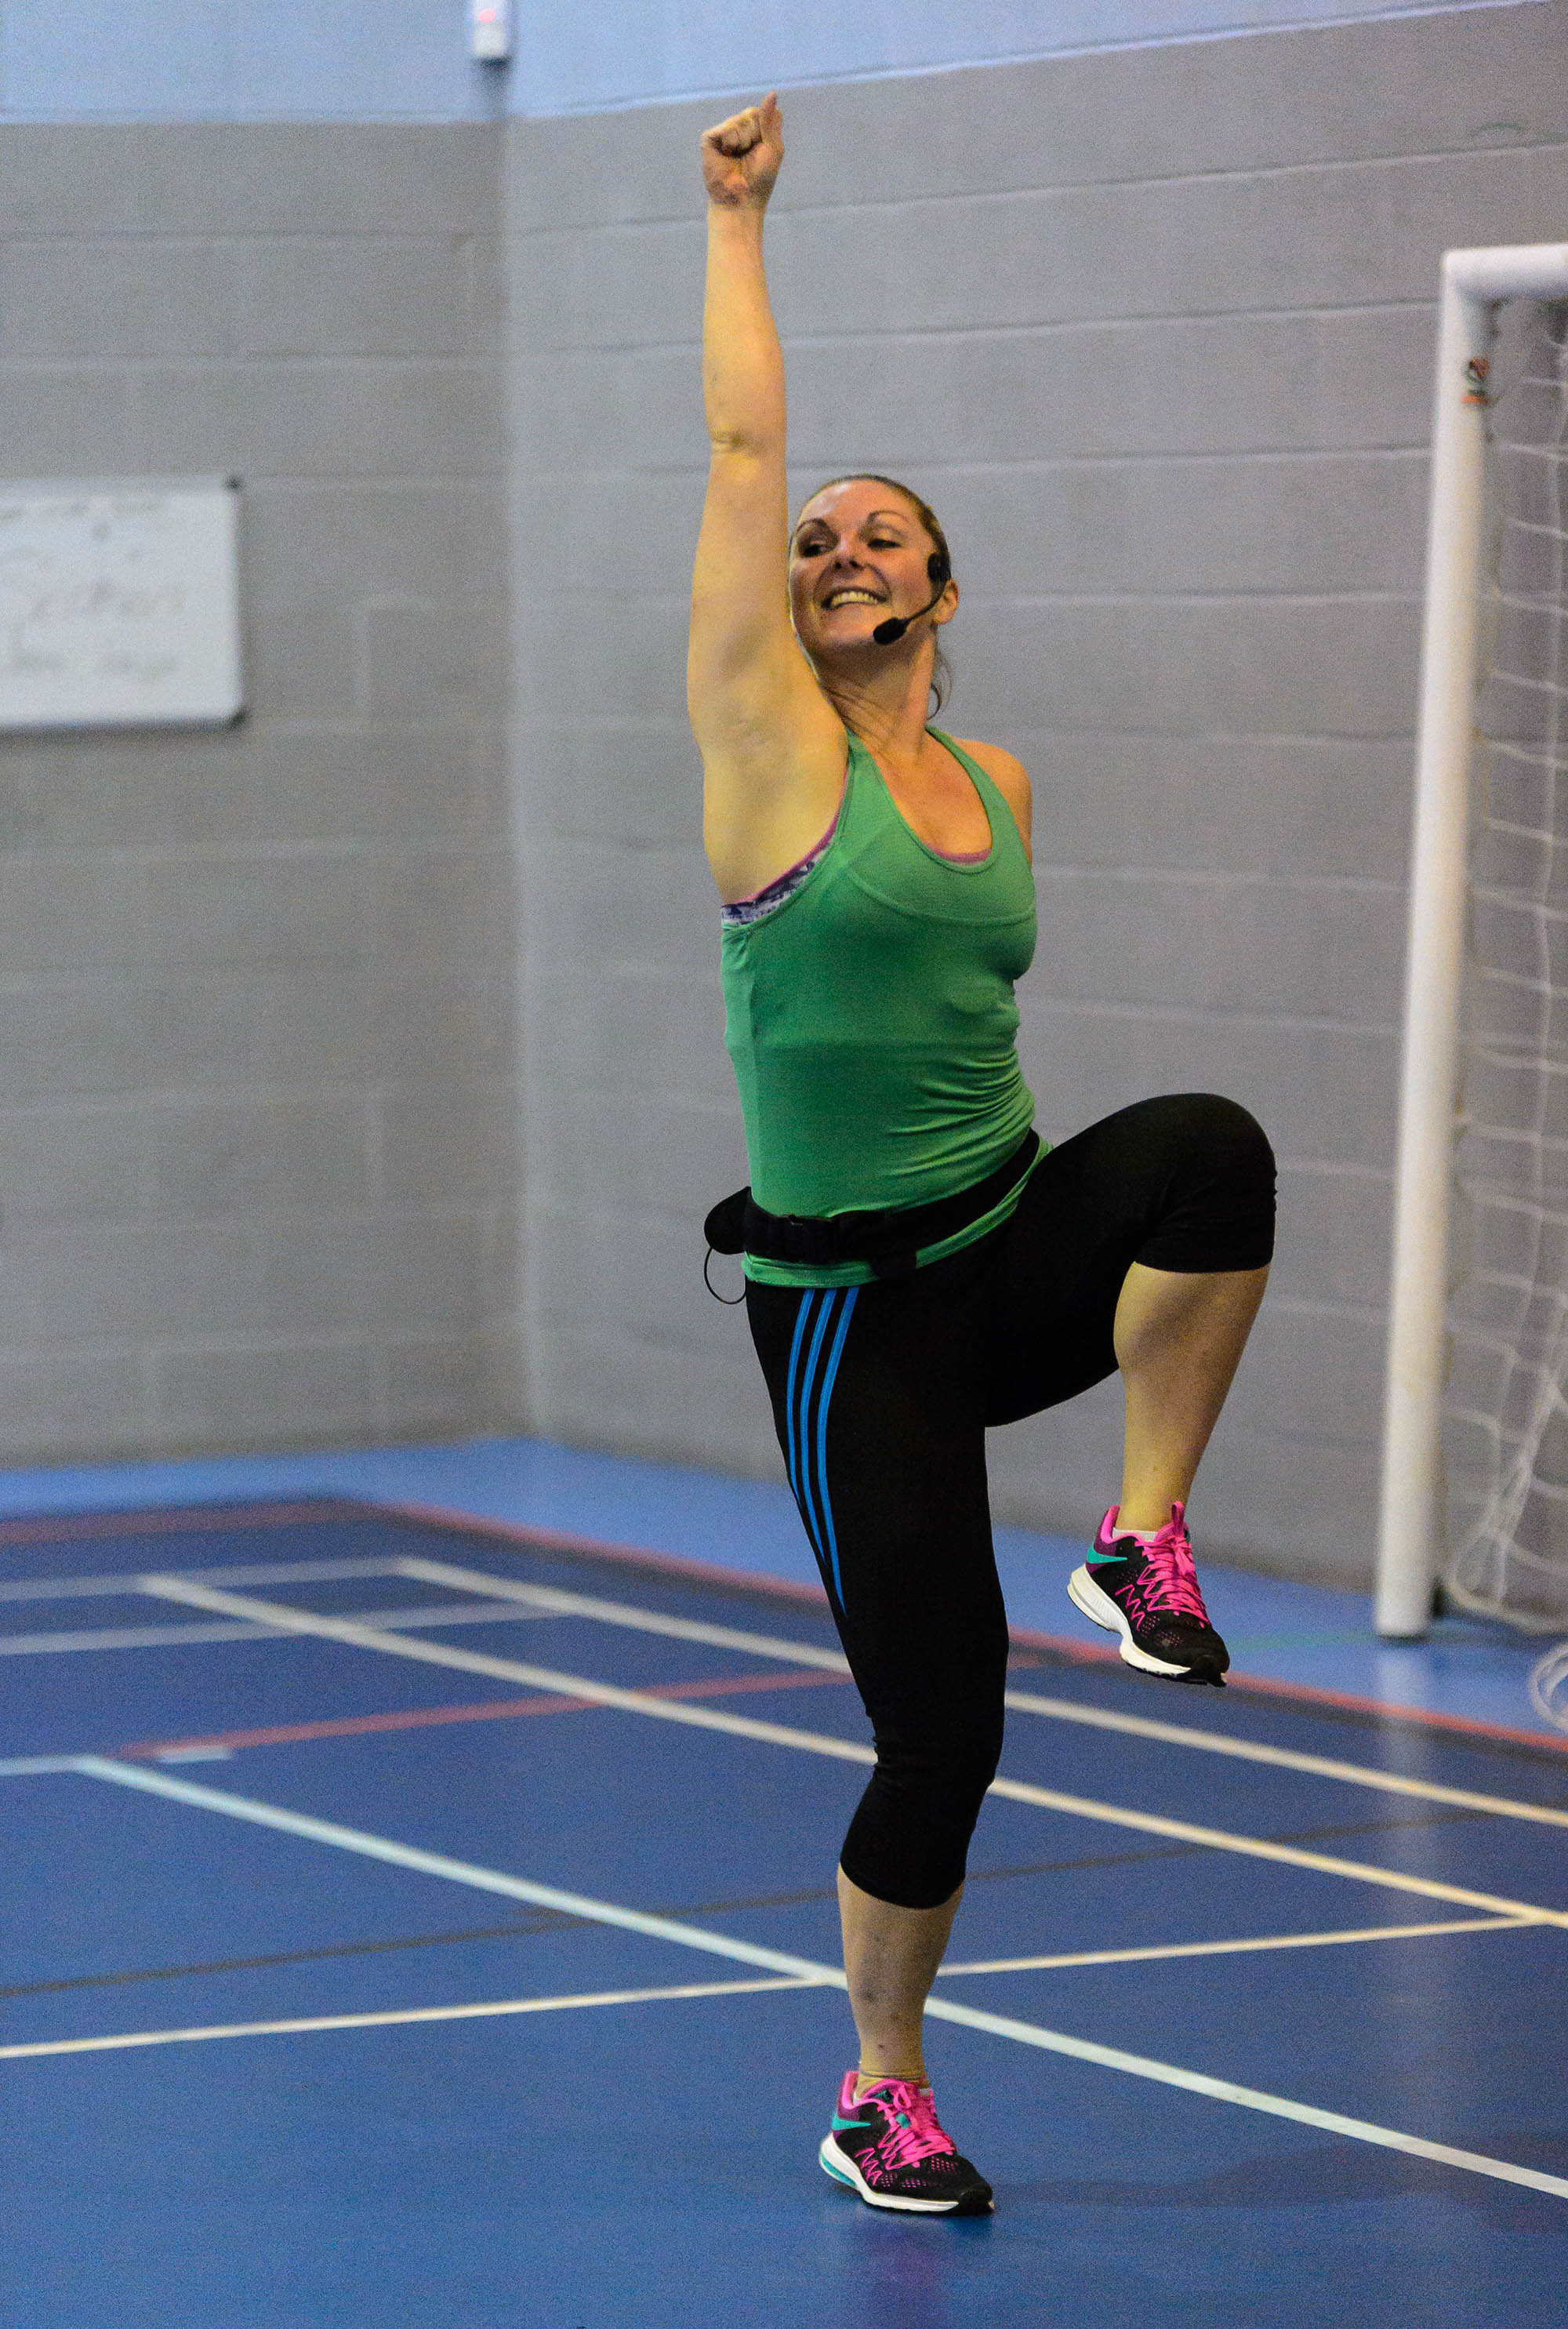 woman fitness instructor smiling mid-demonstration